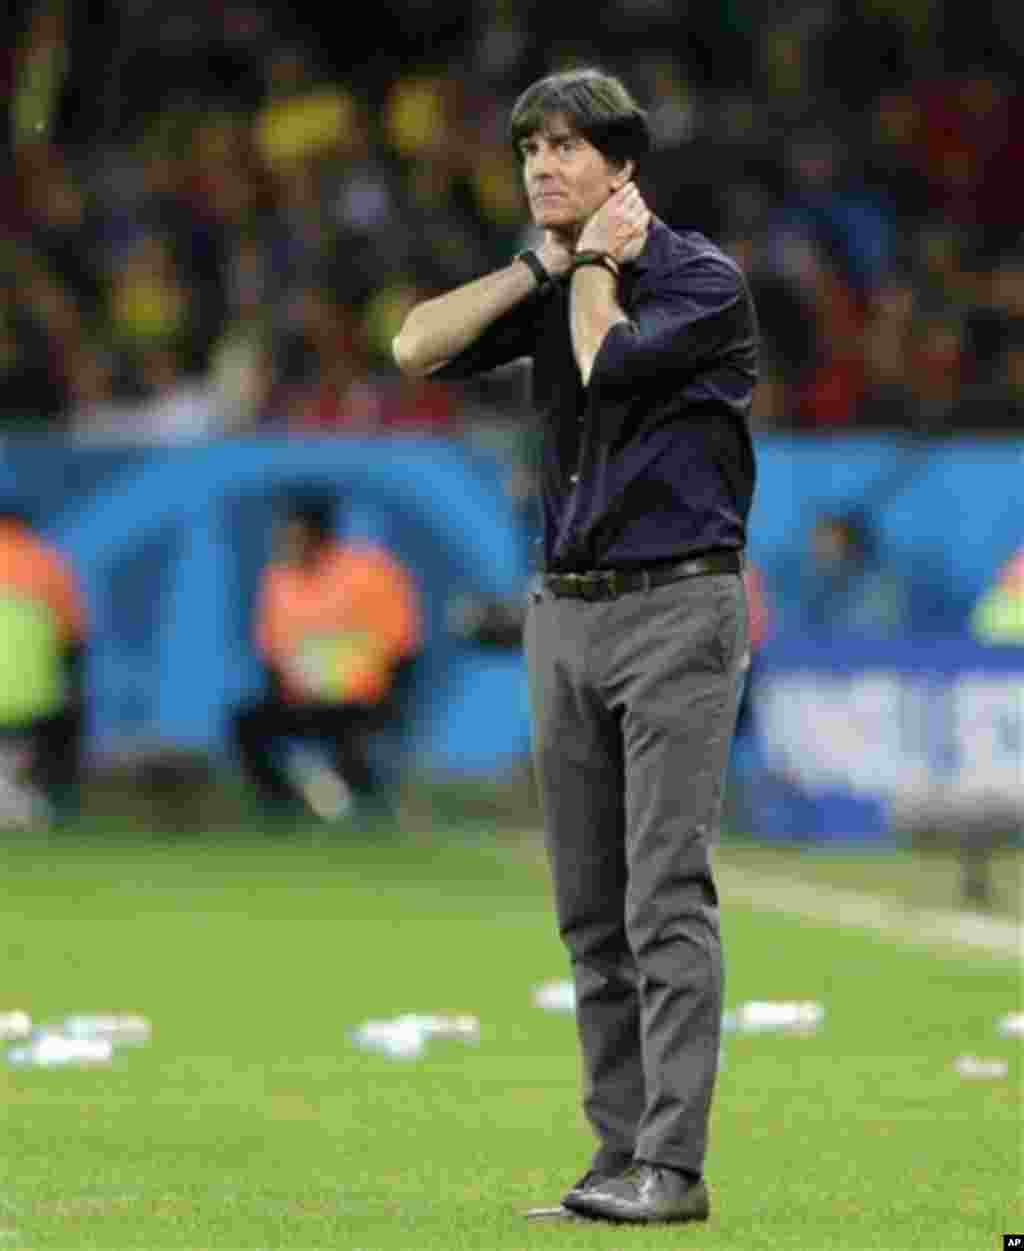 Germany's head coach Joachim Loew watches his team from the sidelines during the World Cup round of 16 soccer match between Germany and Algeria at the Estadio Beira-Rio in Porto Alegre, Brazil, Monday, June 30, 2014. (AP Photo/Matthias Schrader)